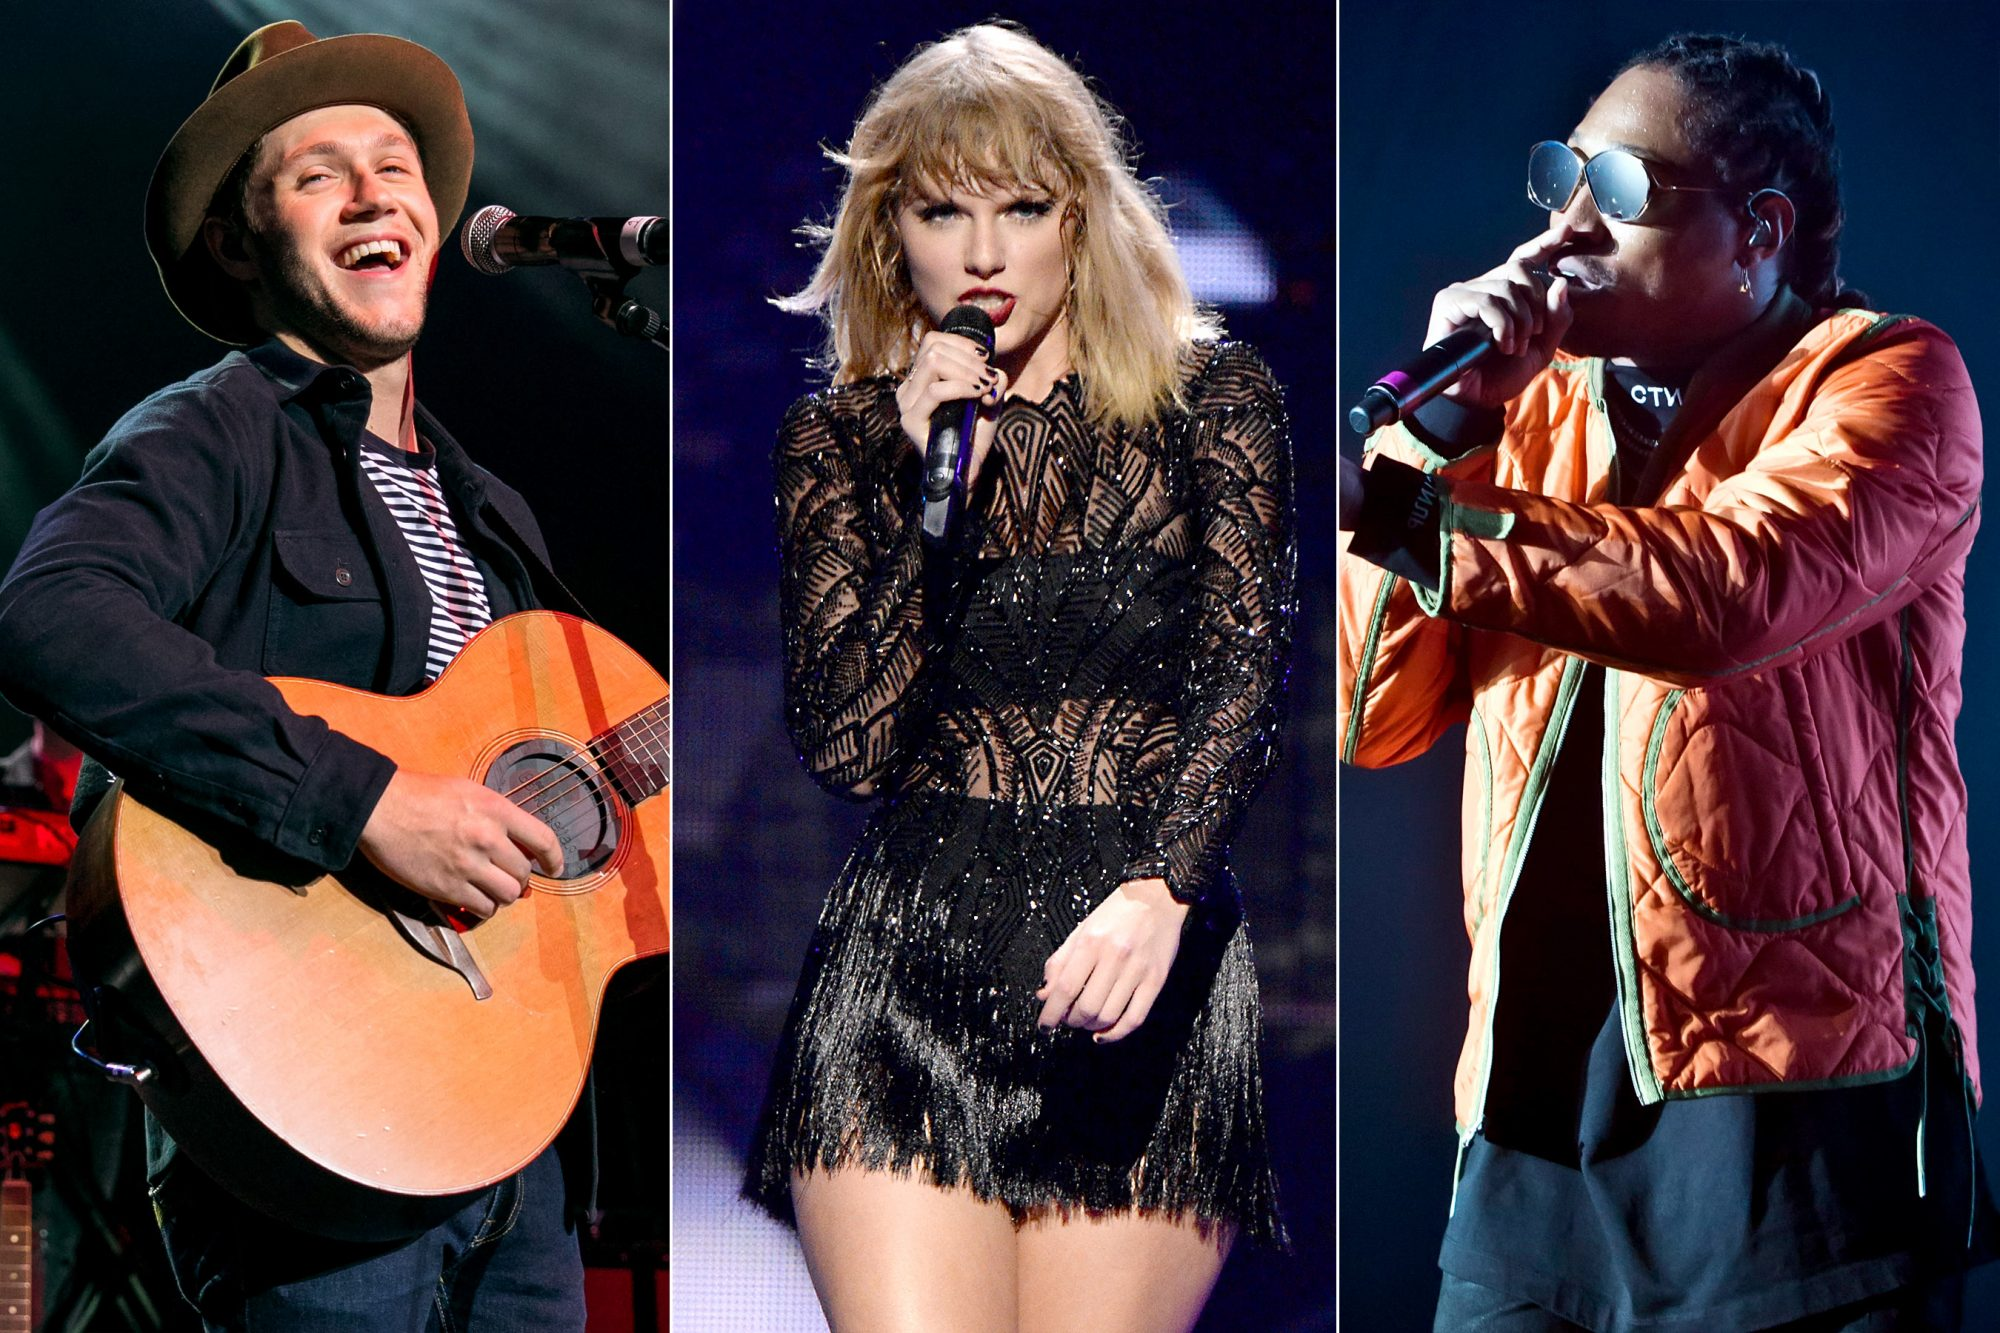 Niall Horan / Taylor Swift / Future